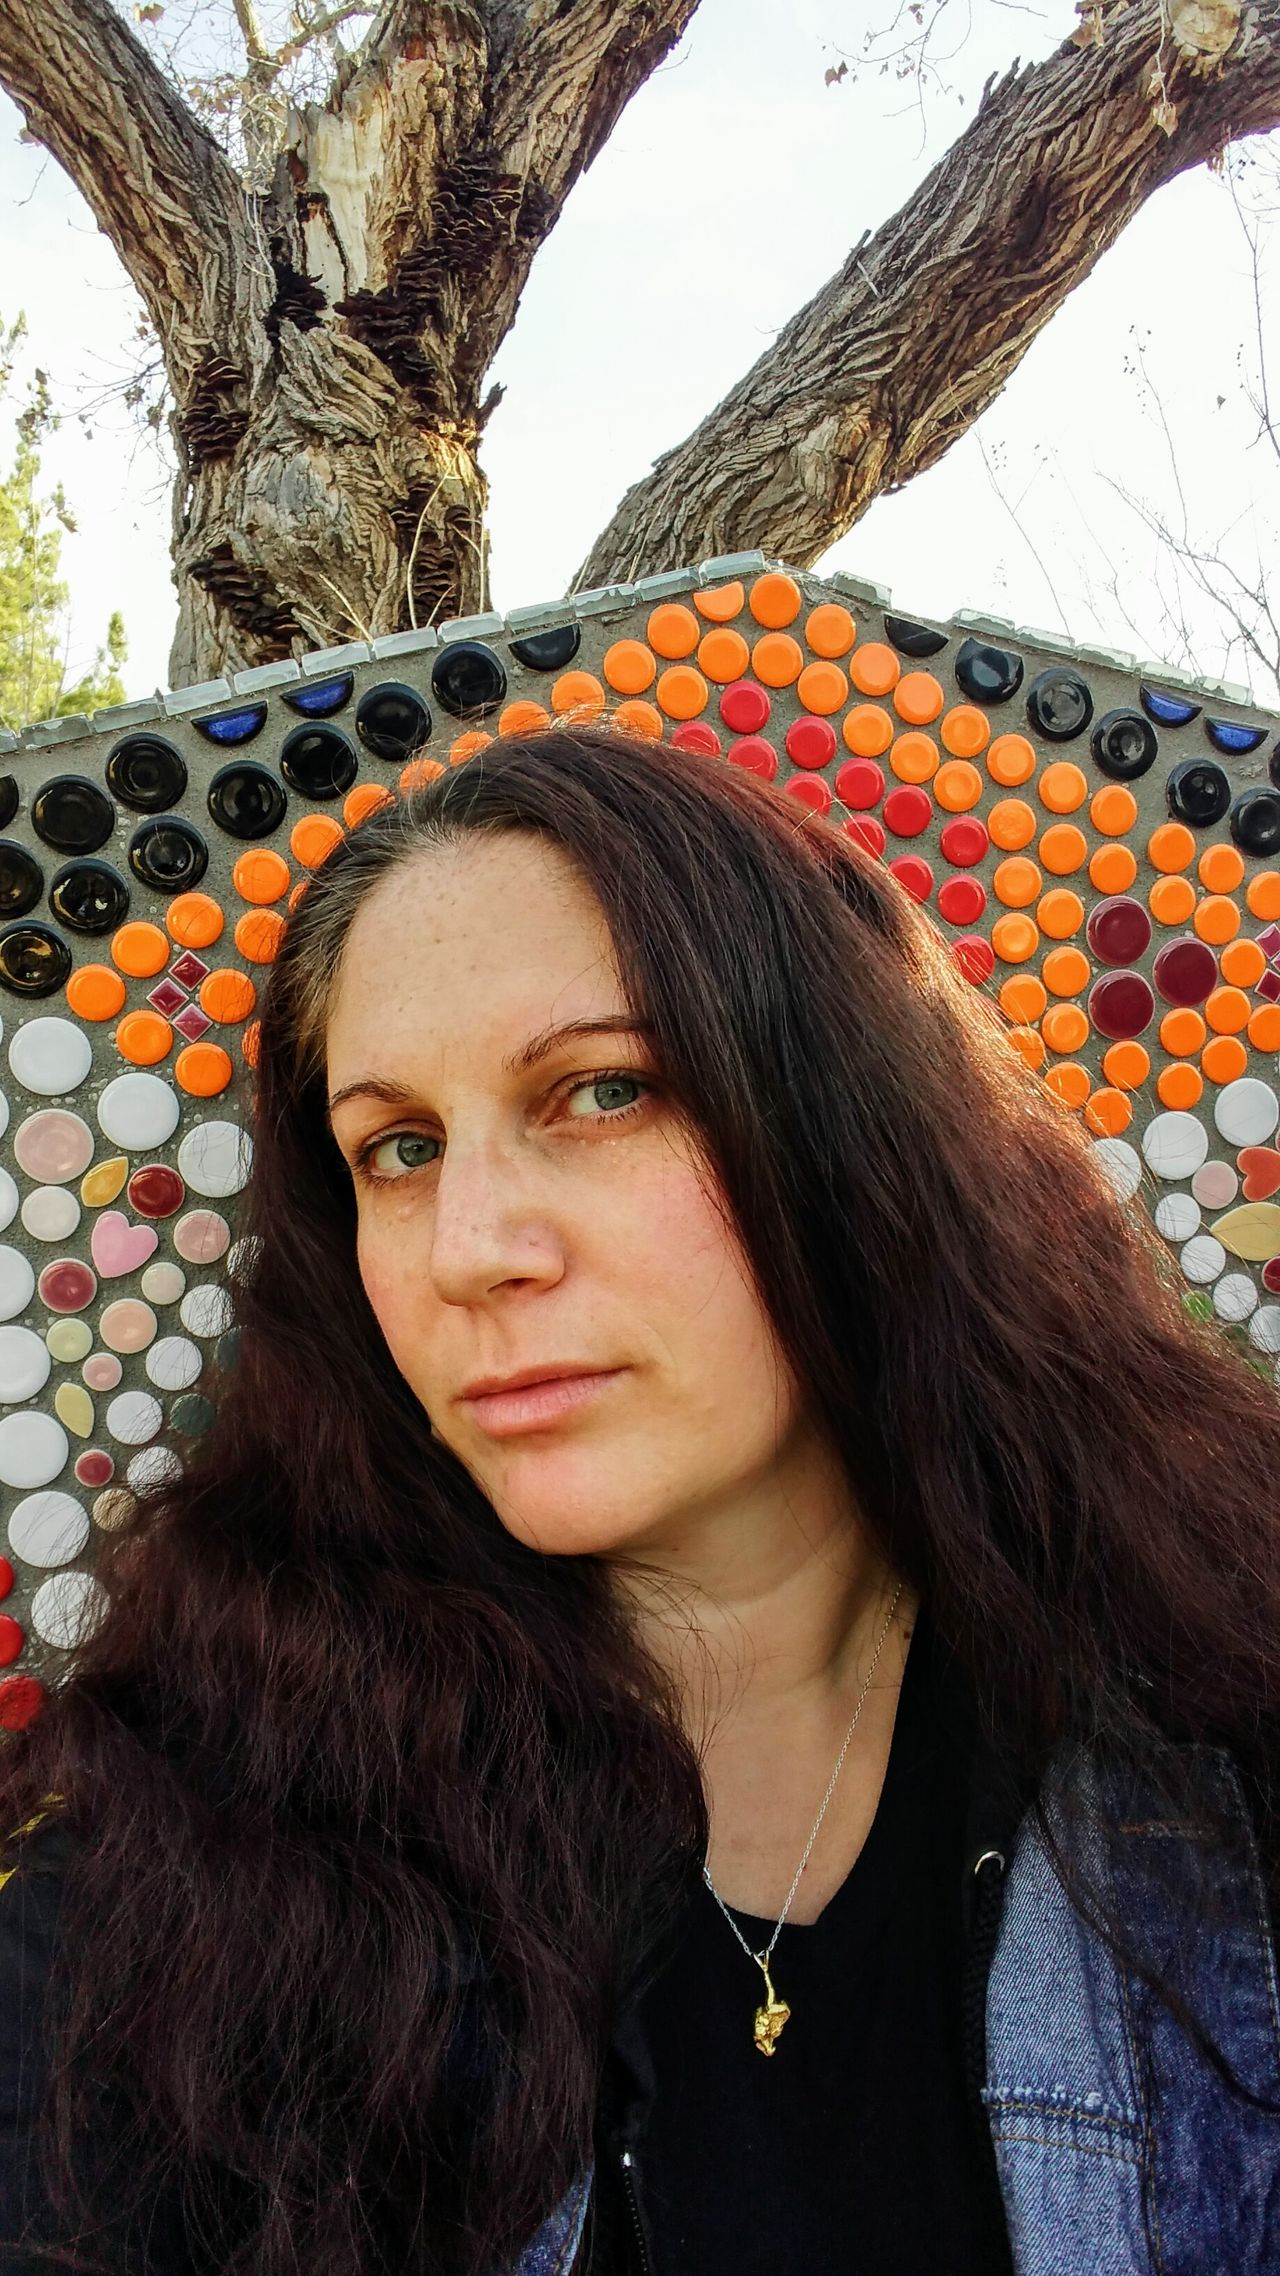 Selfie on Mosaic Throne One Person Long Hair Contemplation Leisure Activity Headshot One Woman Only Beautiful Woman Portrait Front View Close-up Women Outdoors People Beauty Only Women Day Mosaic Sunshine Winter Green Eyes Gold Nugget No Smile Selfıe No Makeup Long Hair